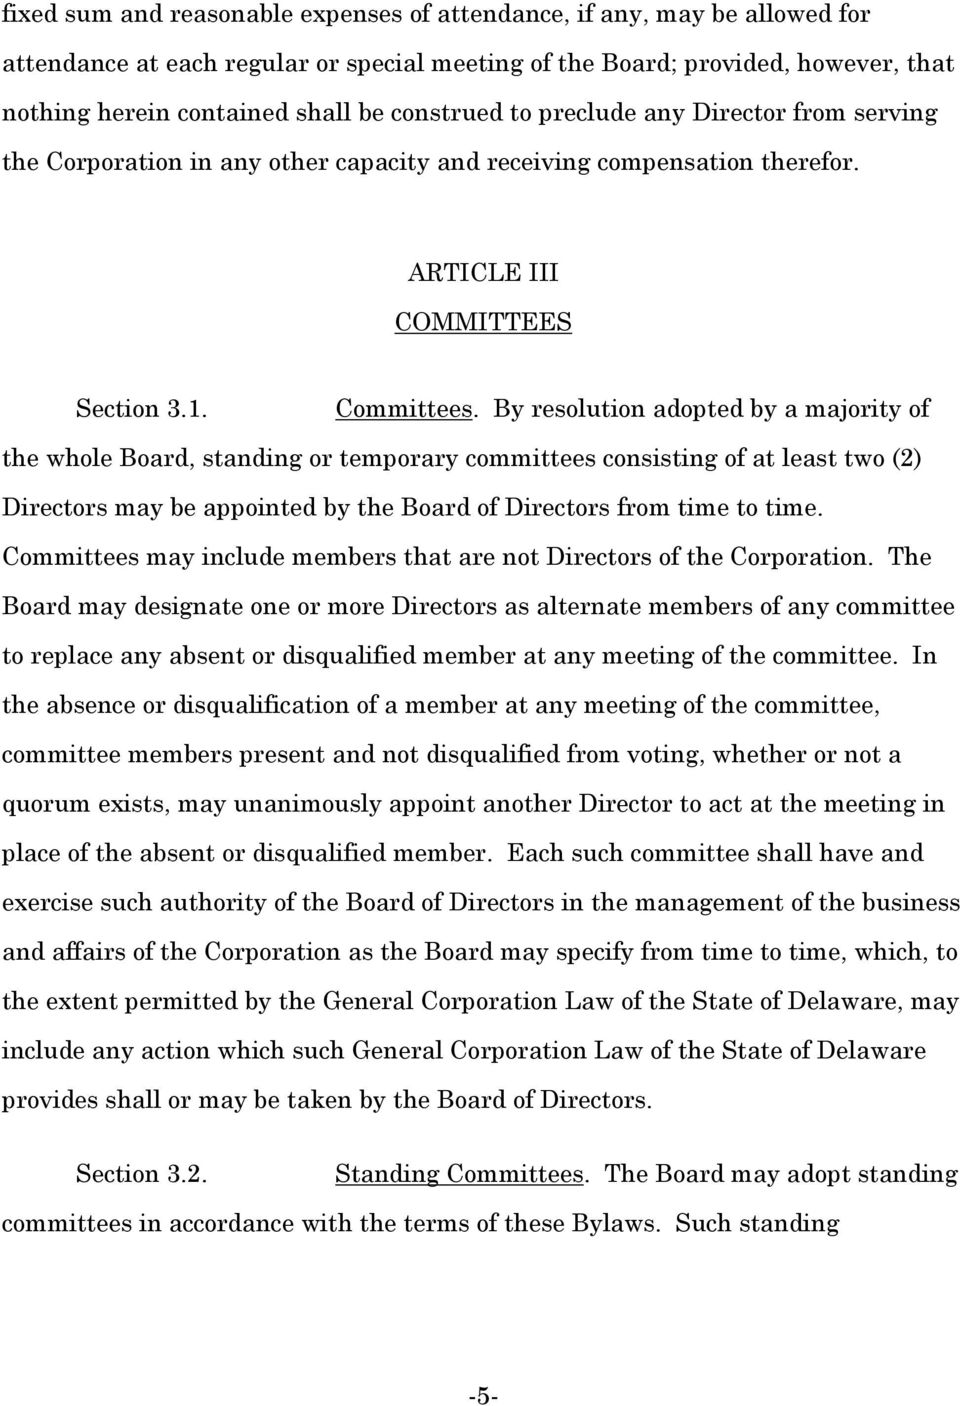 By resolution adopted by a majority of the whole Board, standing or temporary committees consisting of at least two (2) Directors may be appointed by the Board of Directors from time to time.